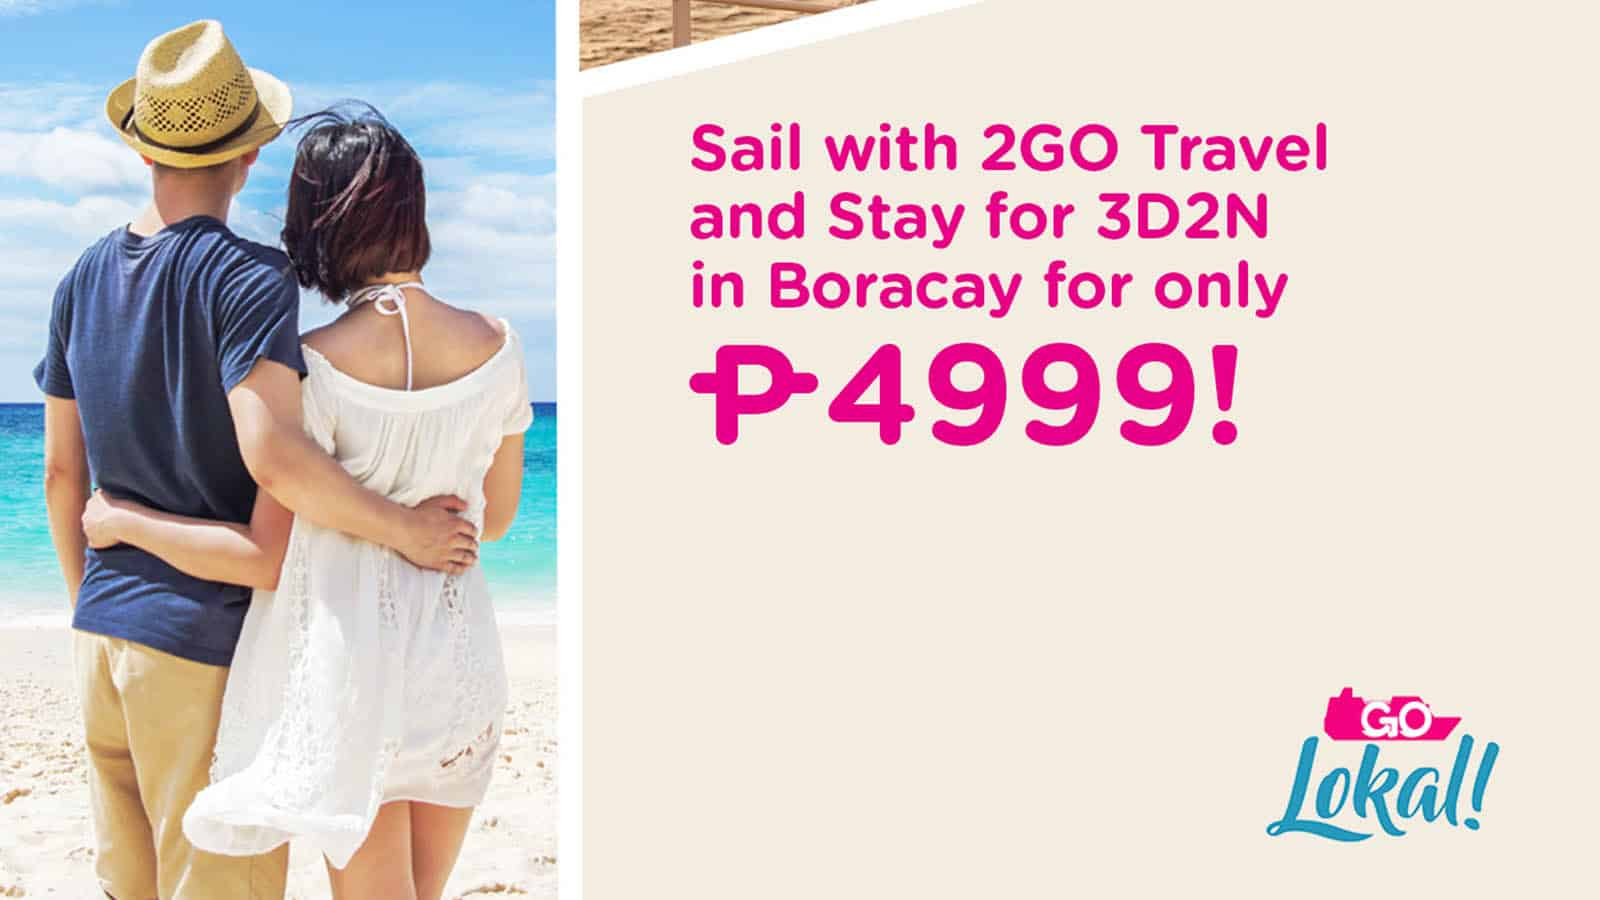 2GO TRAVEL SAIL & STAY PROMO: BORACAY Ferry Ticket + Hotel Stay Package